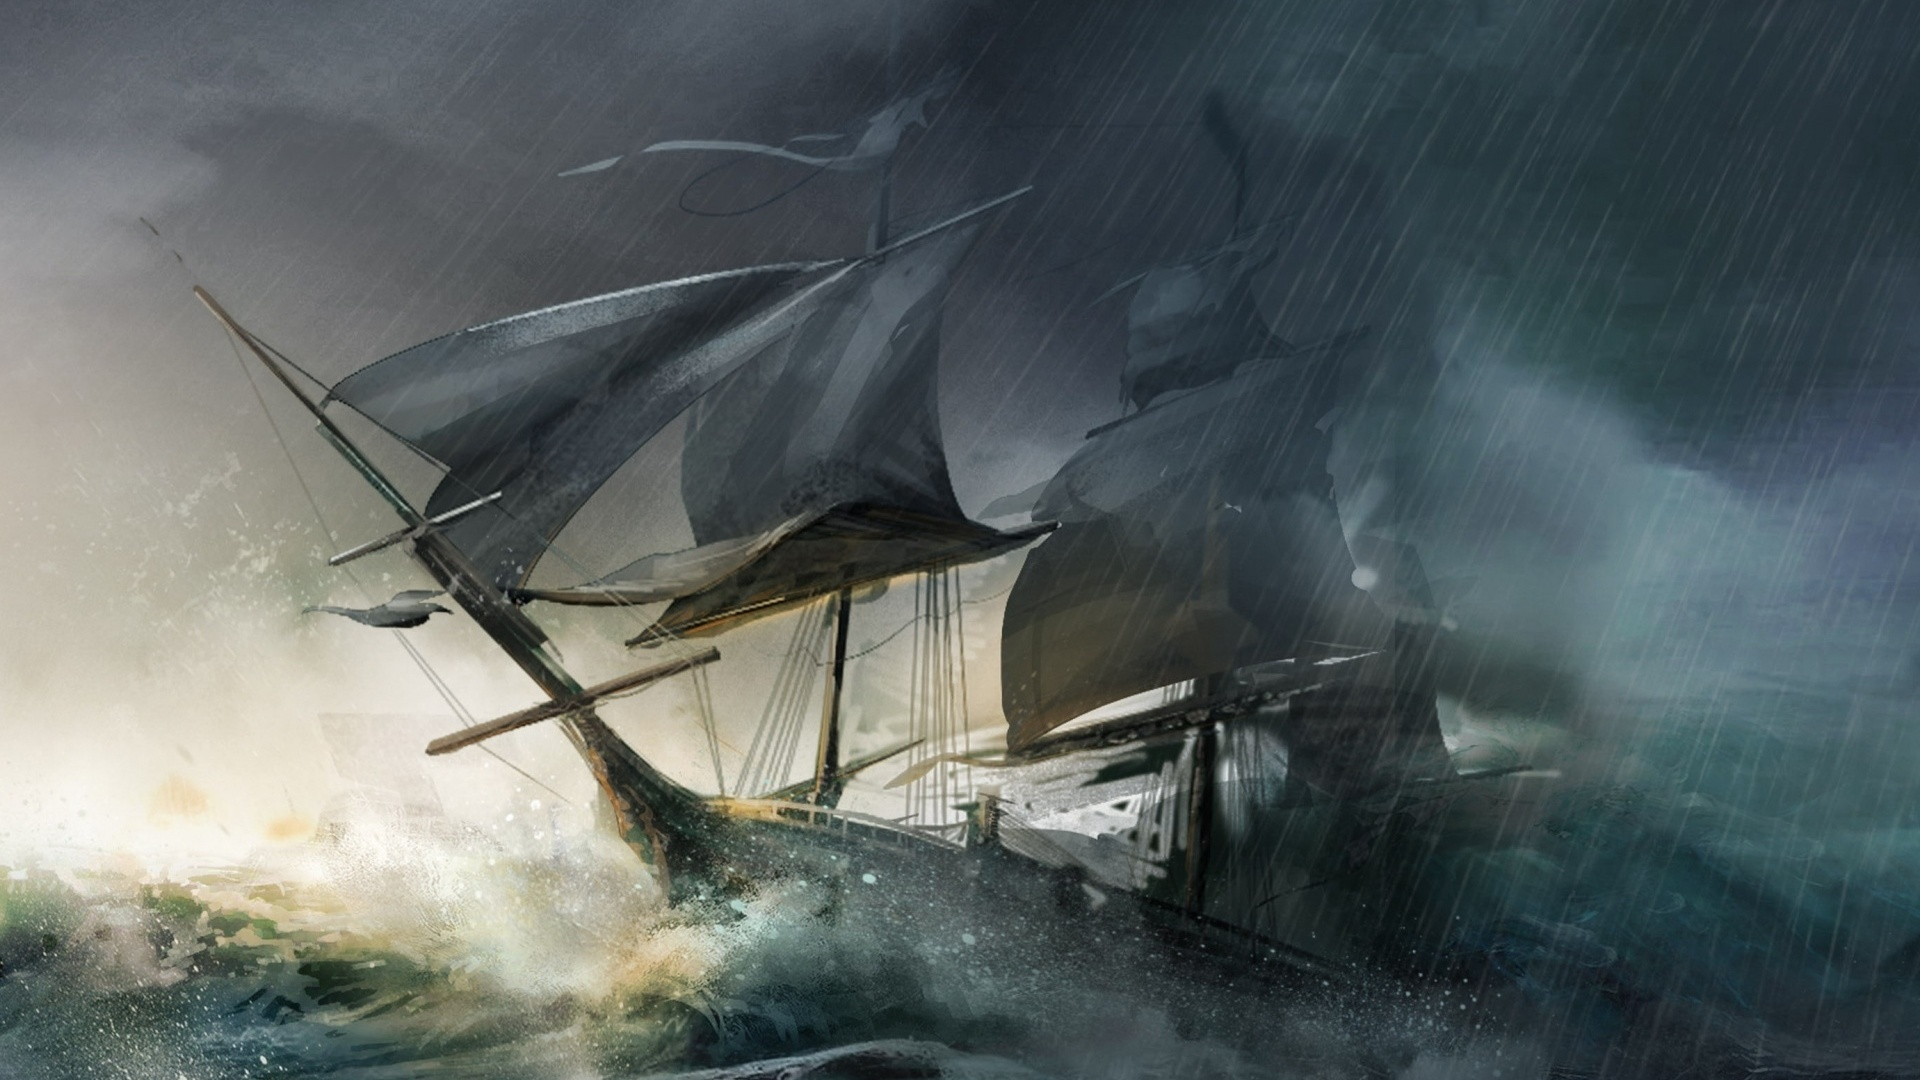 Storm Pictures - Wallpaper, High Definition, High Quality, Widescreen